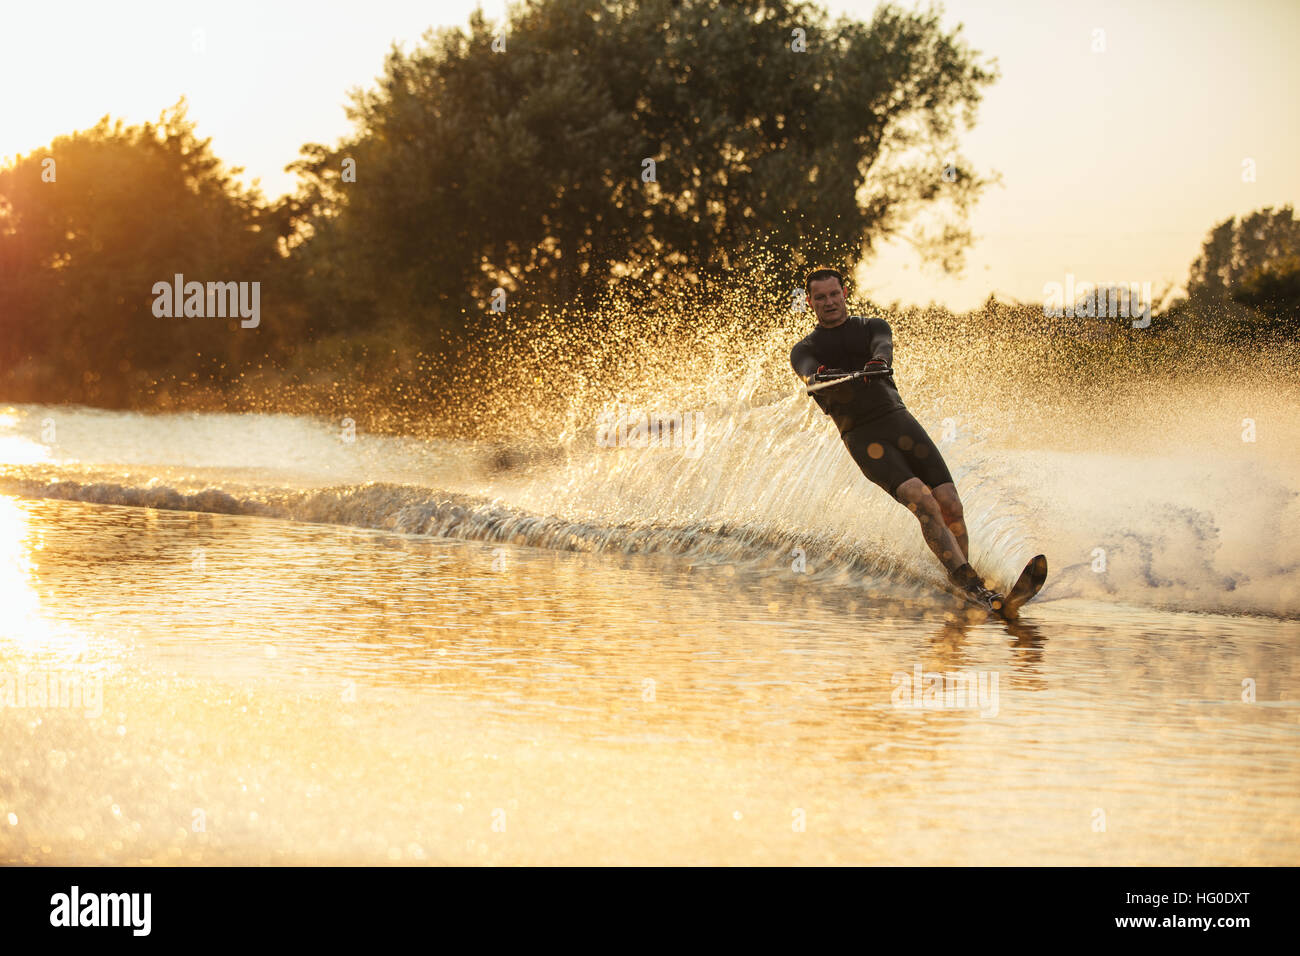 Man wakeboarding on a lake with splashes of water. Wakeboarder surfing across the lake. - Stock Image